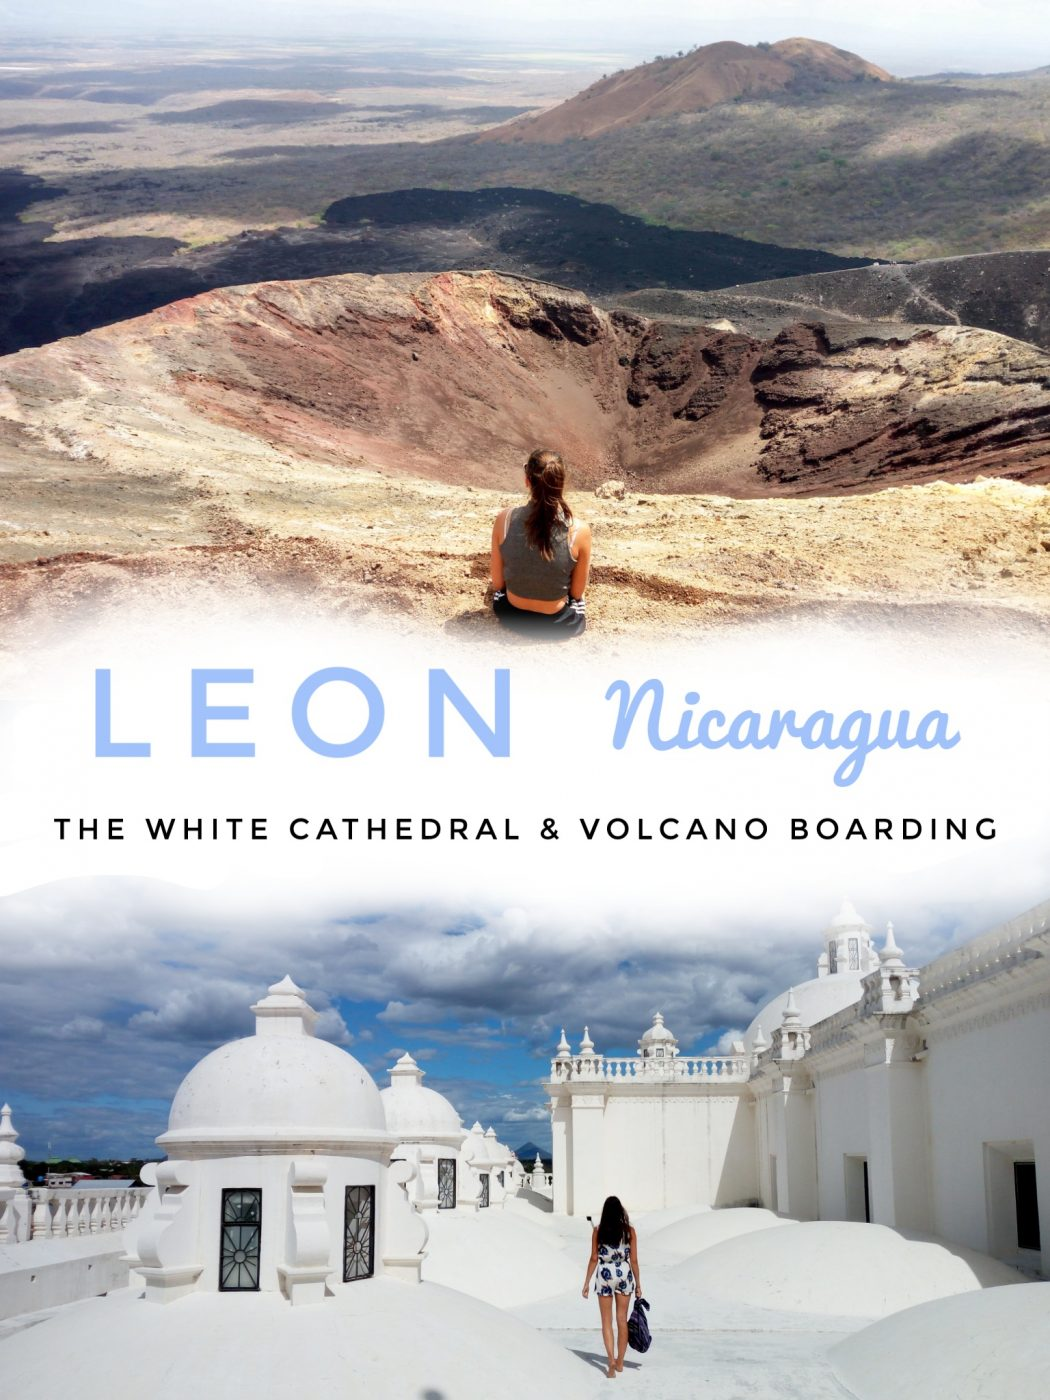 Two things not to miss out on in Leon, walk on top of a white cathedral and slide down the nearby volcano. Both, in one day if you want to.